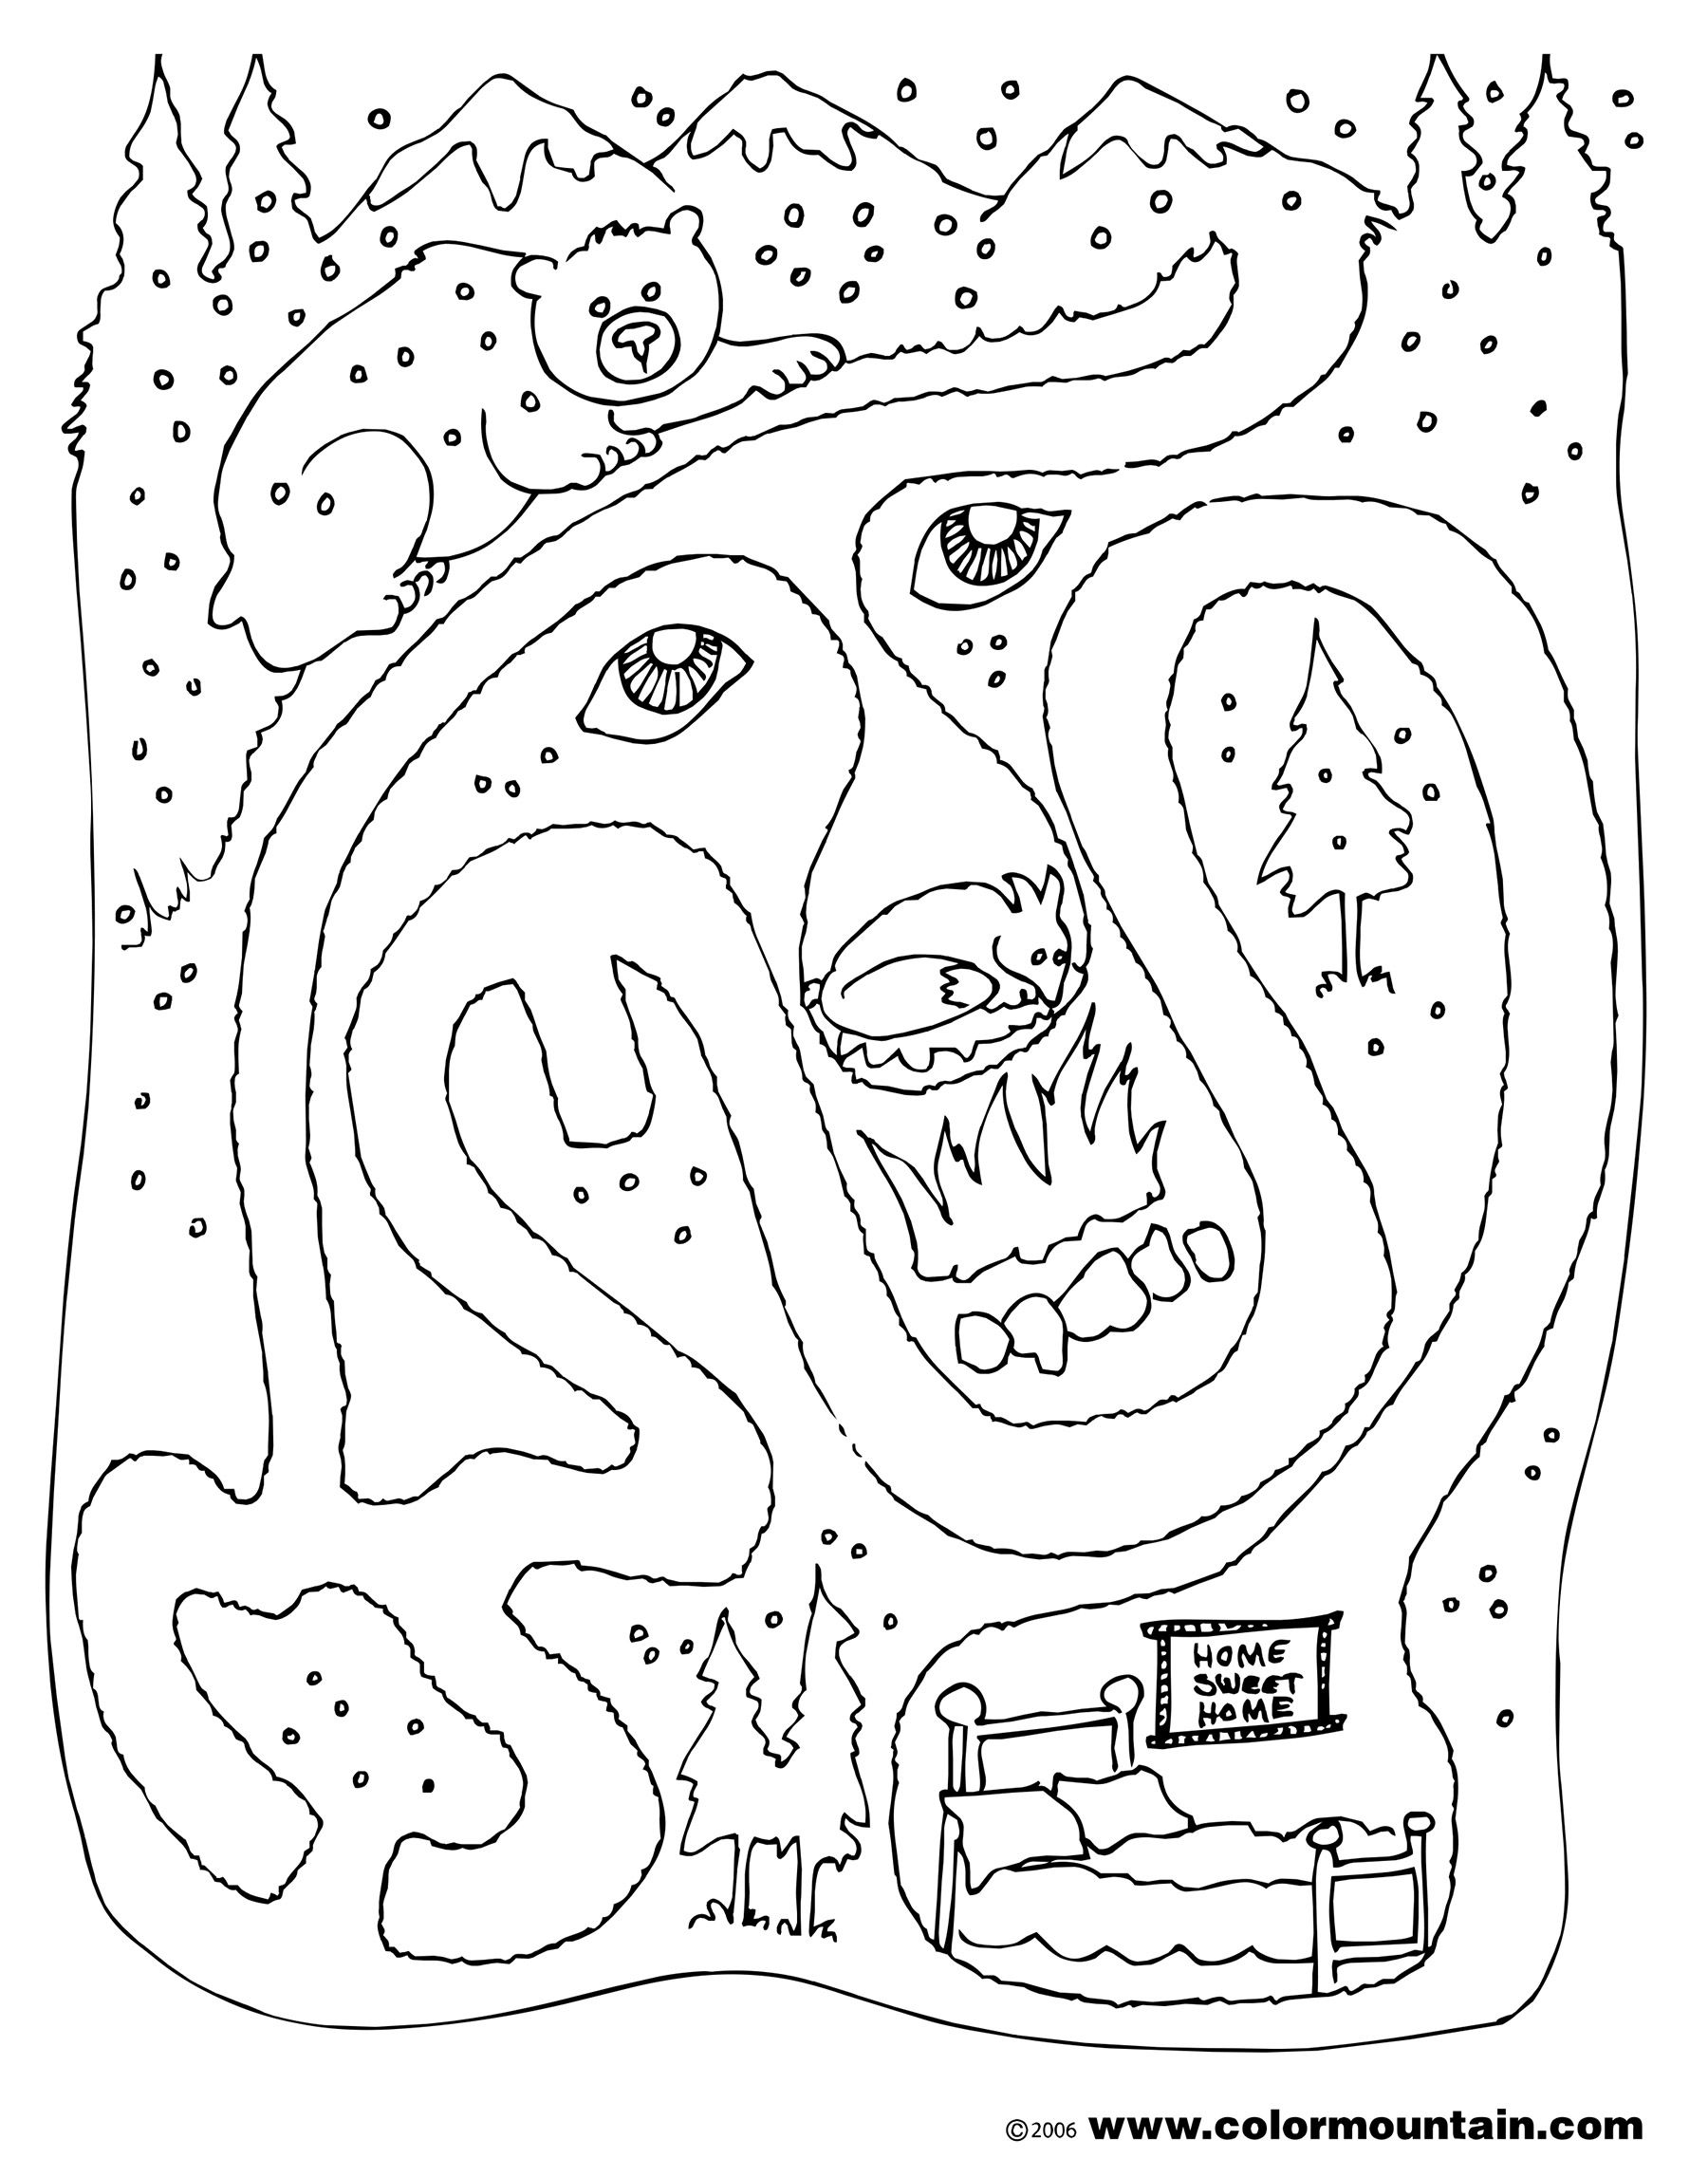 bear maze activity color page coloring page | Bear ...